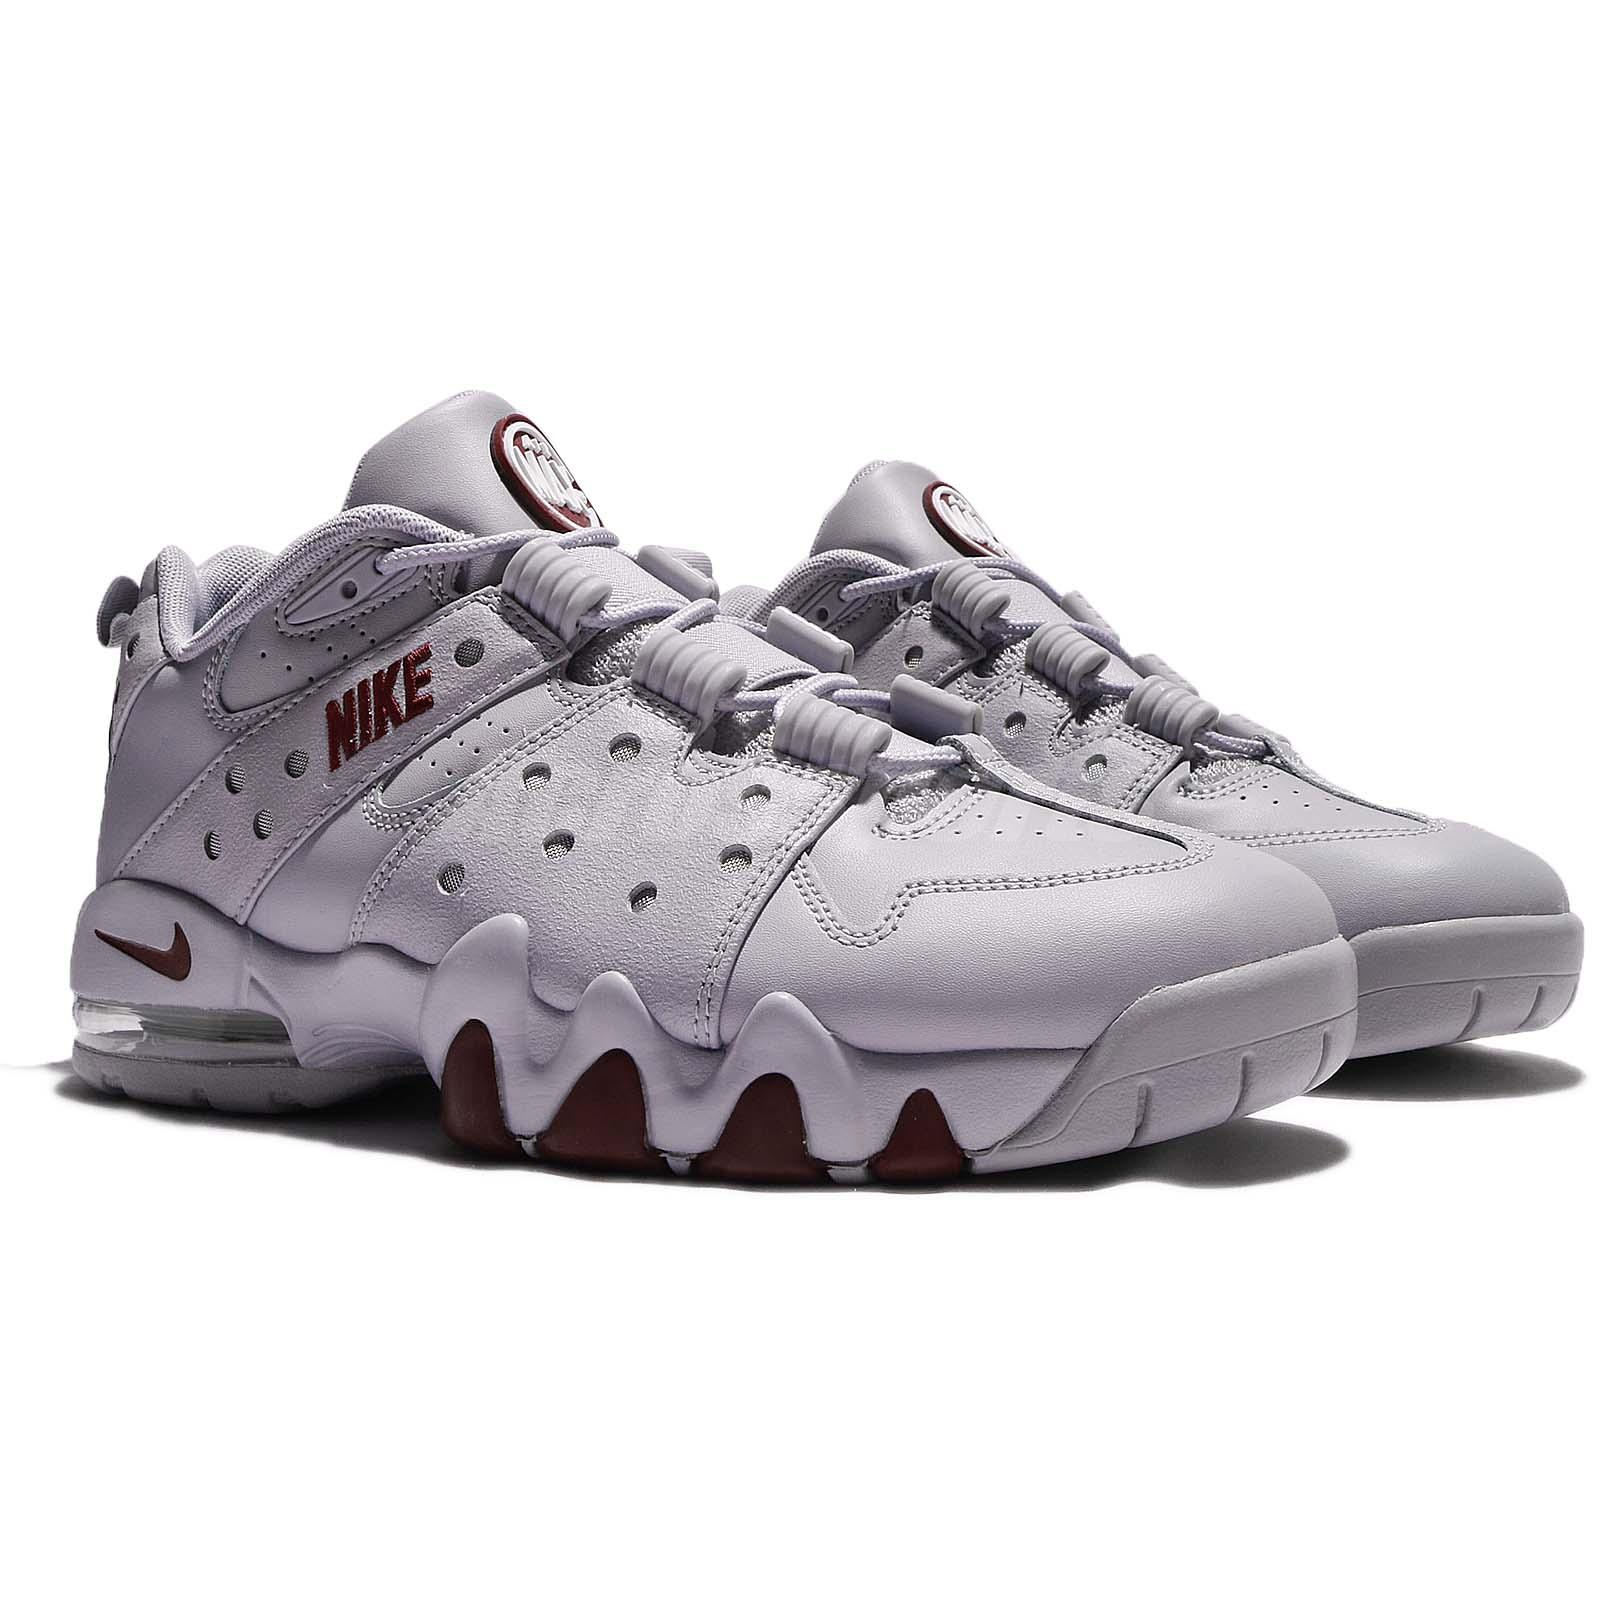 timeless design 6698c 7bfa9 ... inexpensive nike air max2 cb 94 low charles barkley grey red men  basketball shoe 6074d 1238c